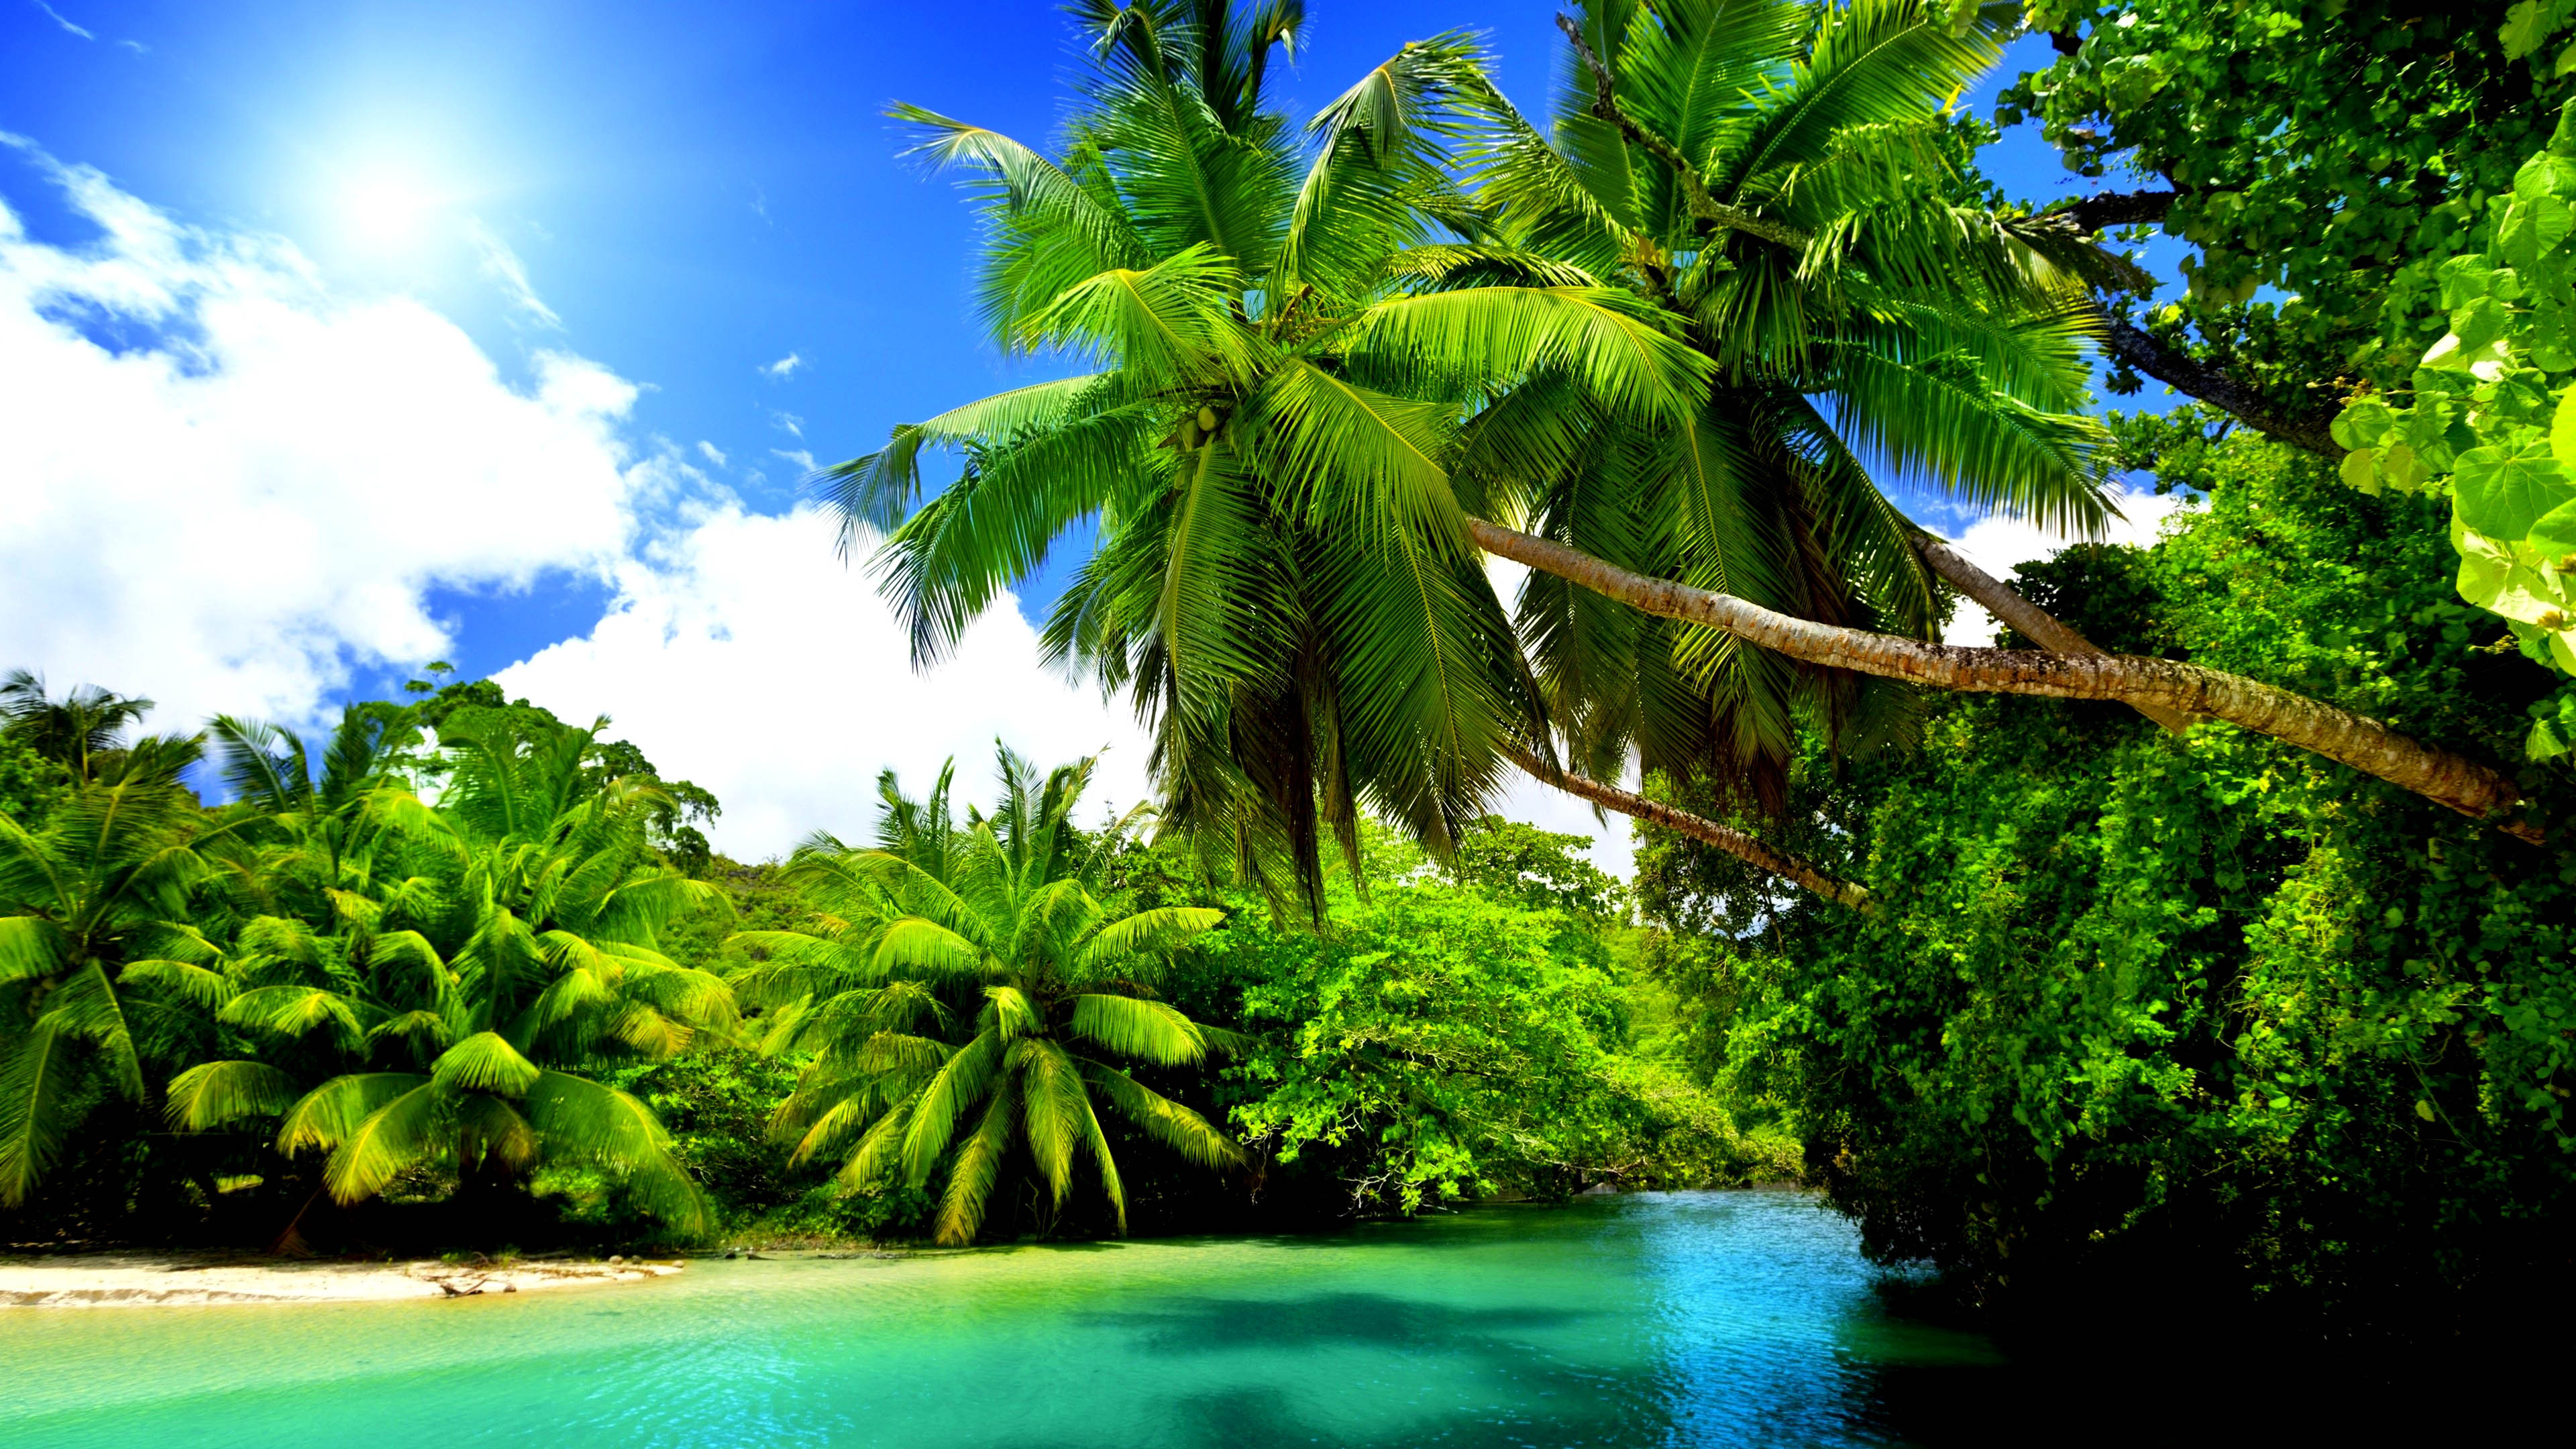 Hd Tropical Island Beach Paradise Wallpapers And Backgrounds: 4K Beach Wallpapers High Quality